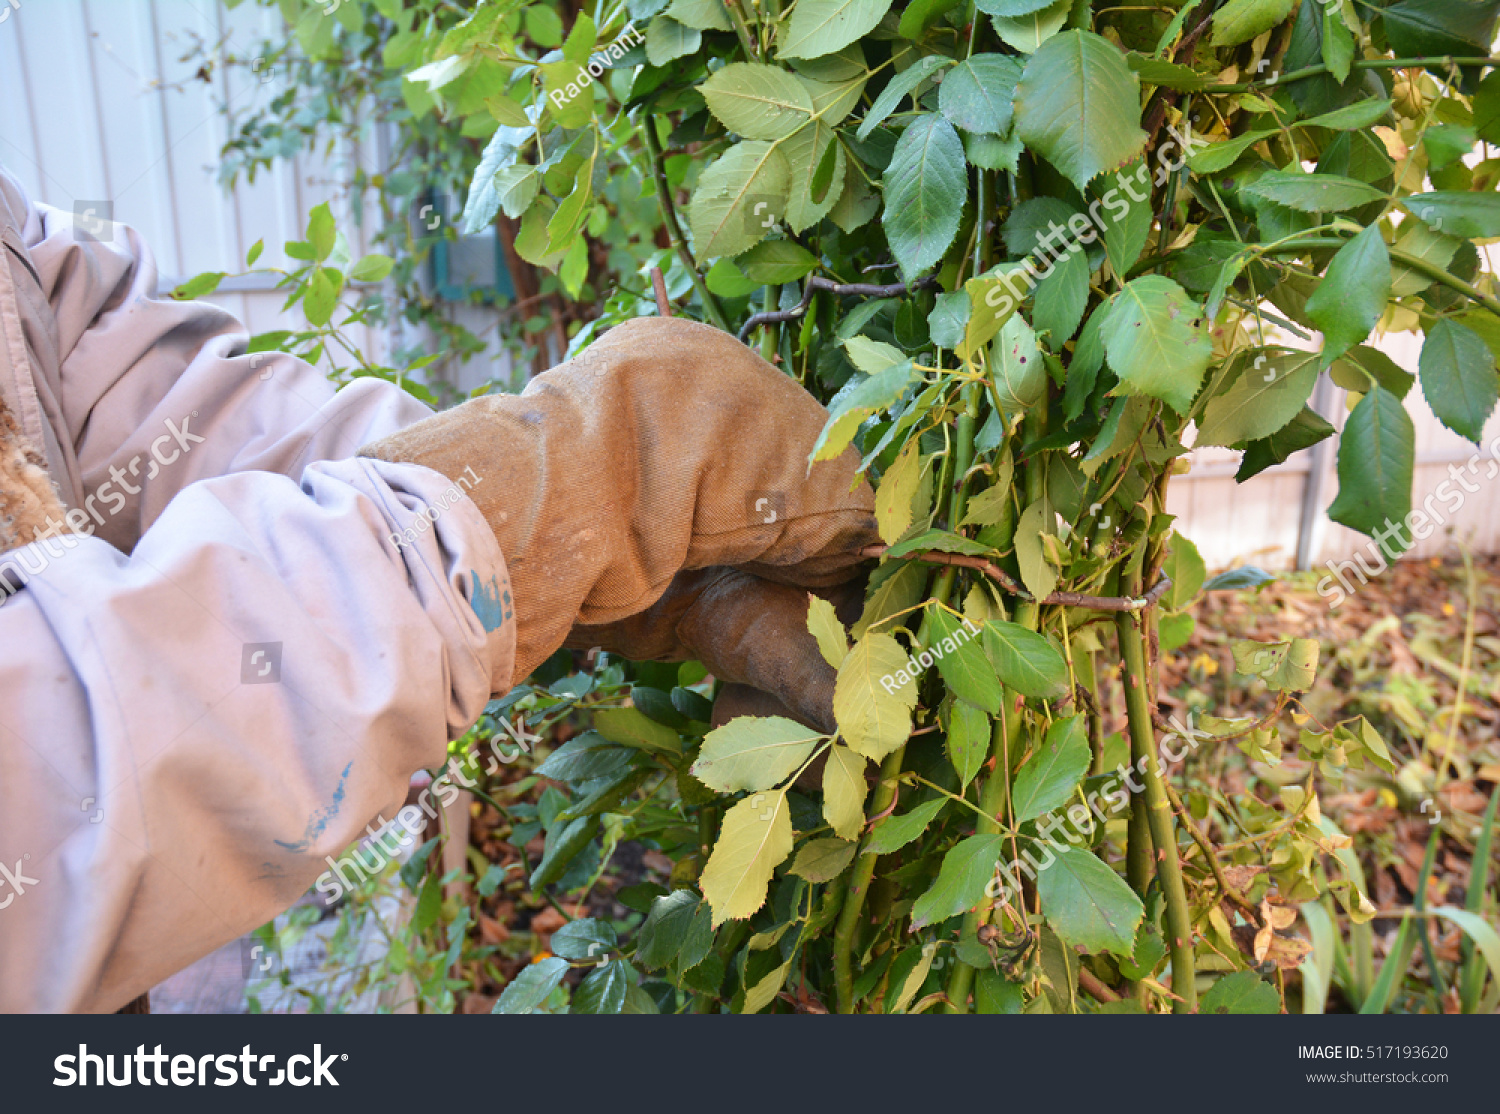 How to prune a rose bush - Mound And Tie Rose Bush Pruning Climbing Roses Shelter Roses For Winter